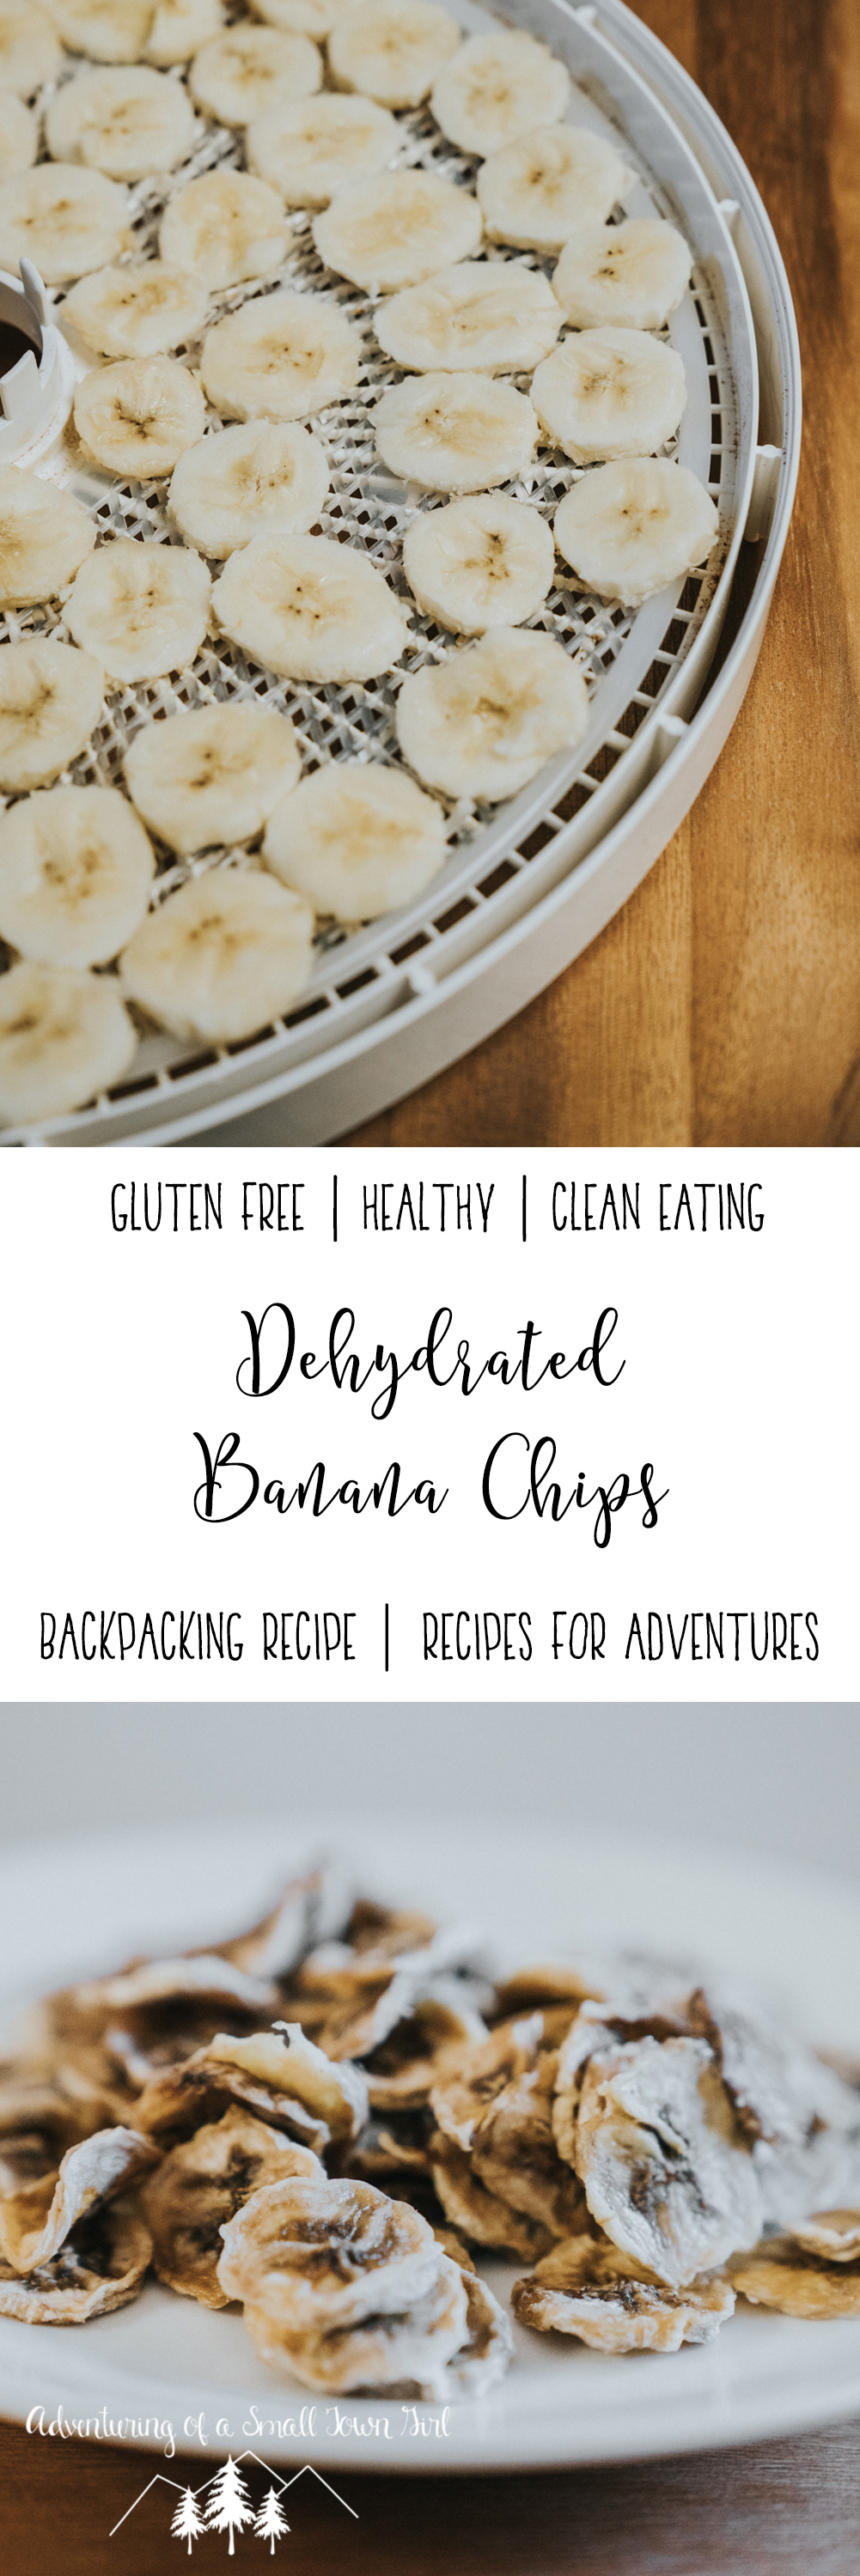 Dehydrated Banana Chips Recipe by Adventuring of a Small Town Girl - Recipes for Backpacking - Recipes for Adventures - Recipes for the trail